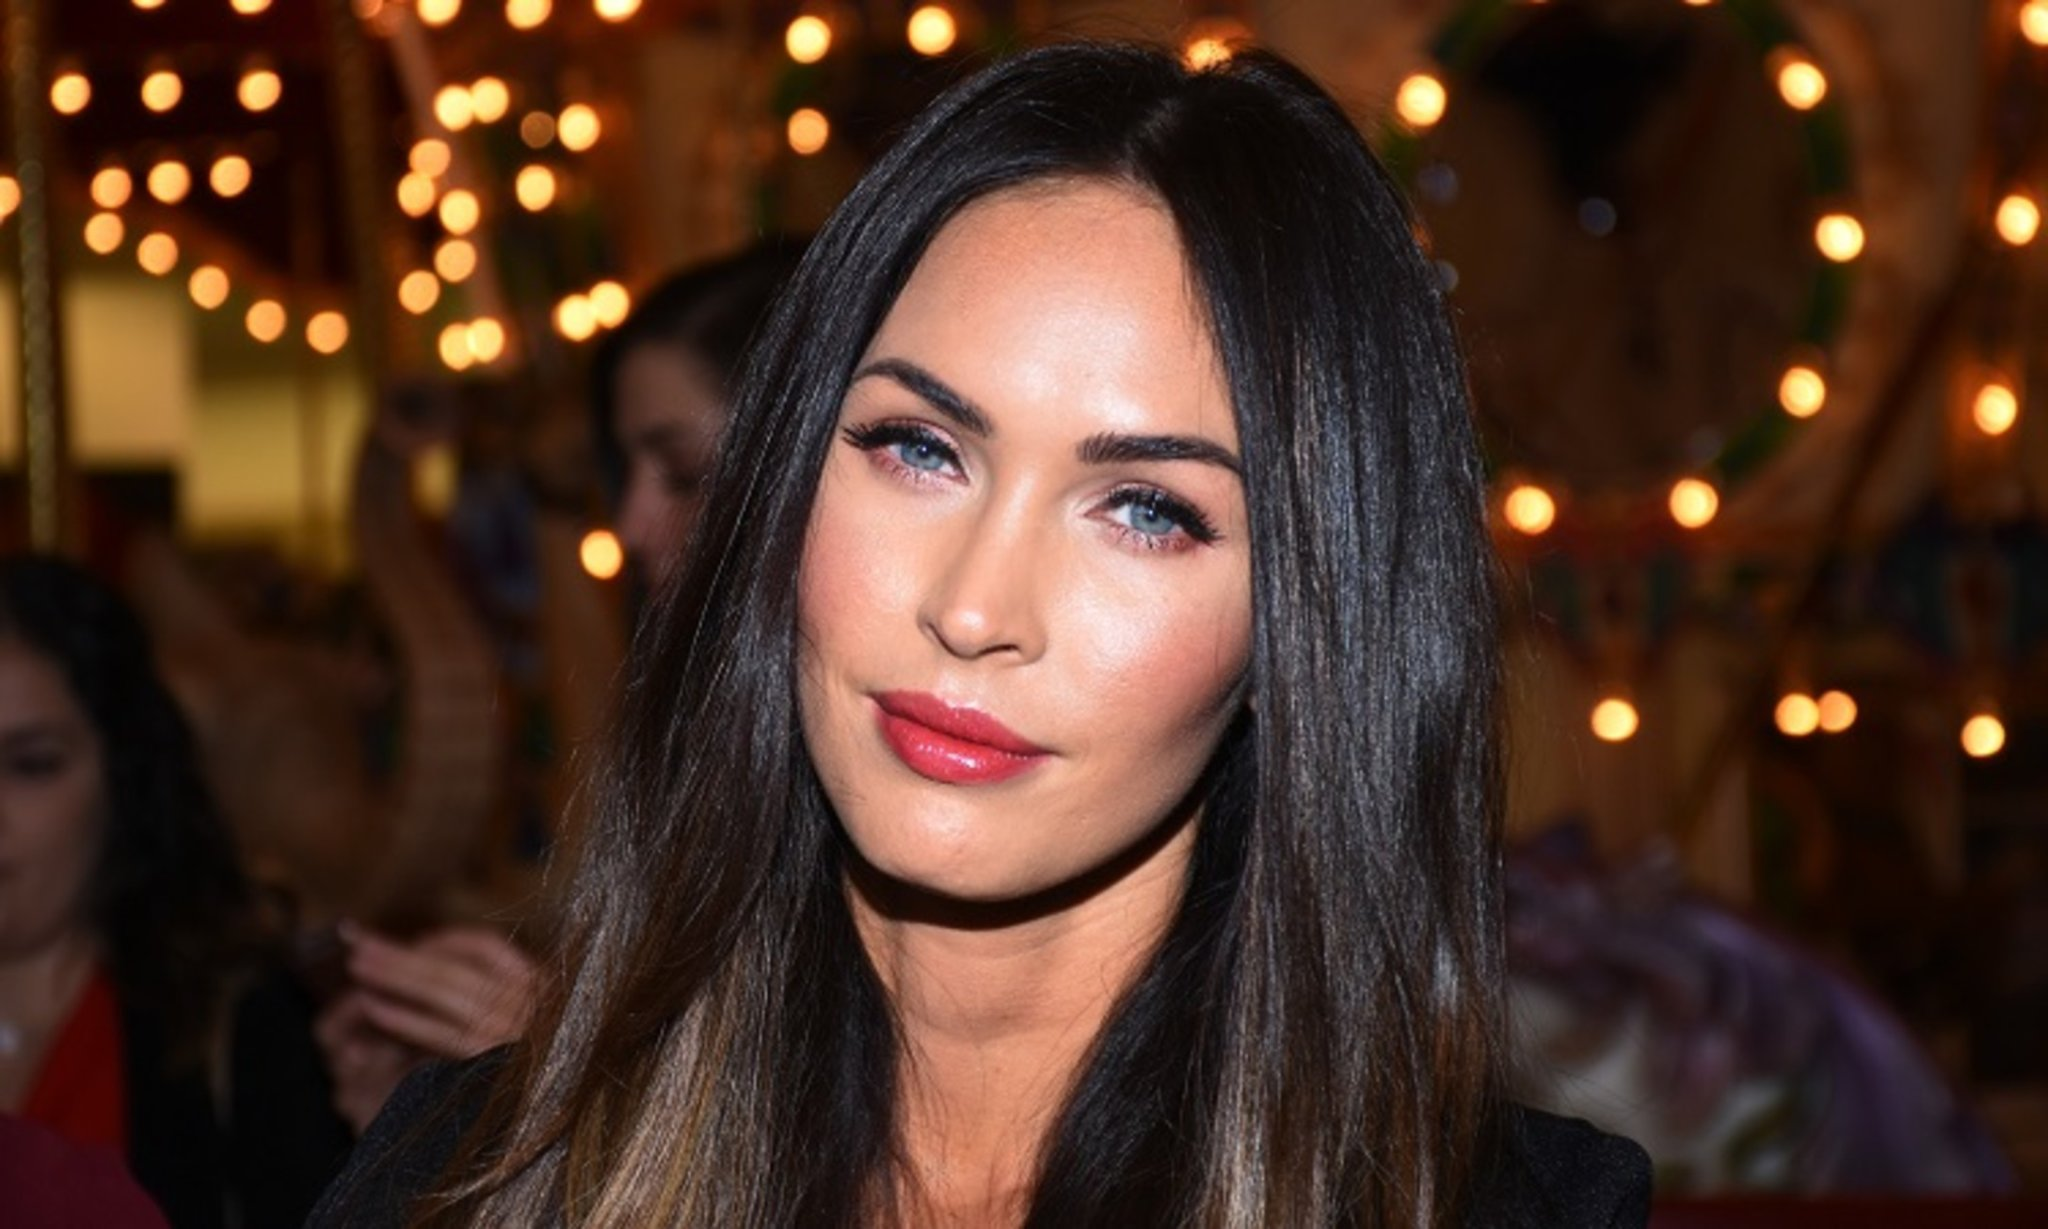 Megan Fox Reveals Her 8-Year-Old Son Gets Bullied for Wearing Dresses to School